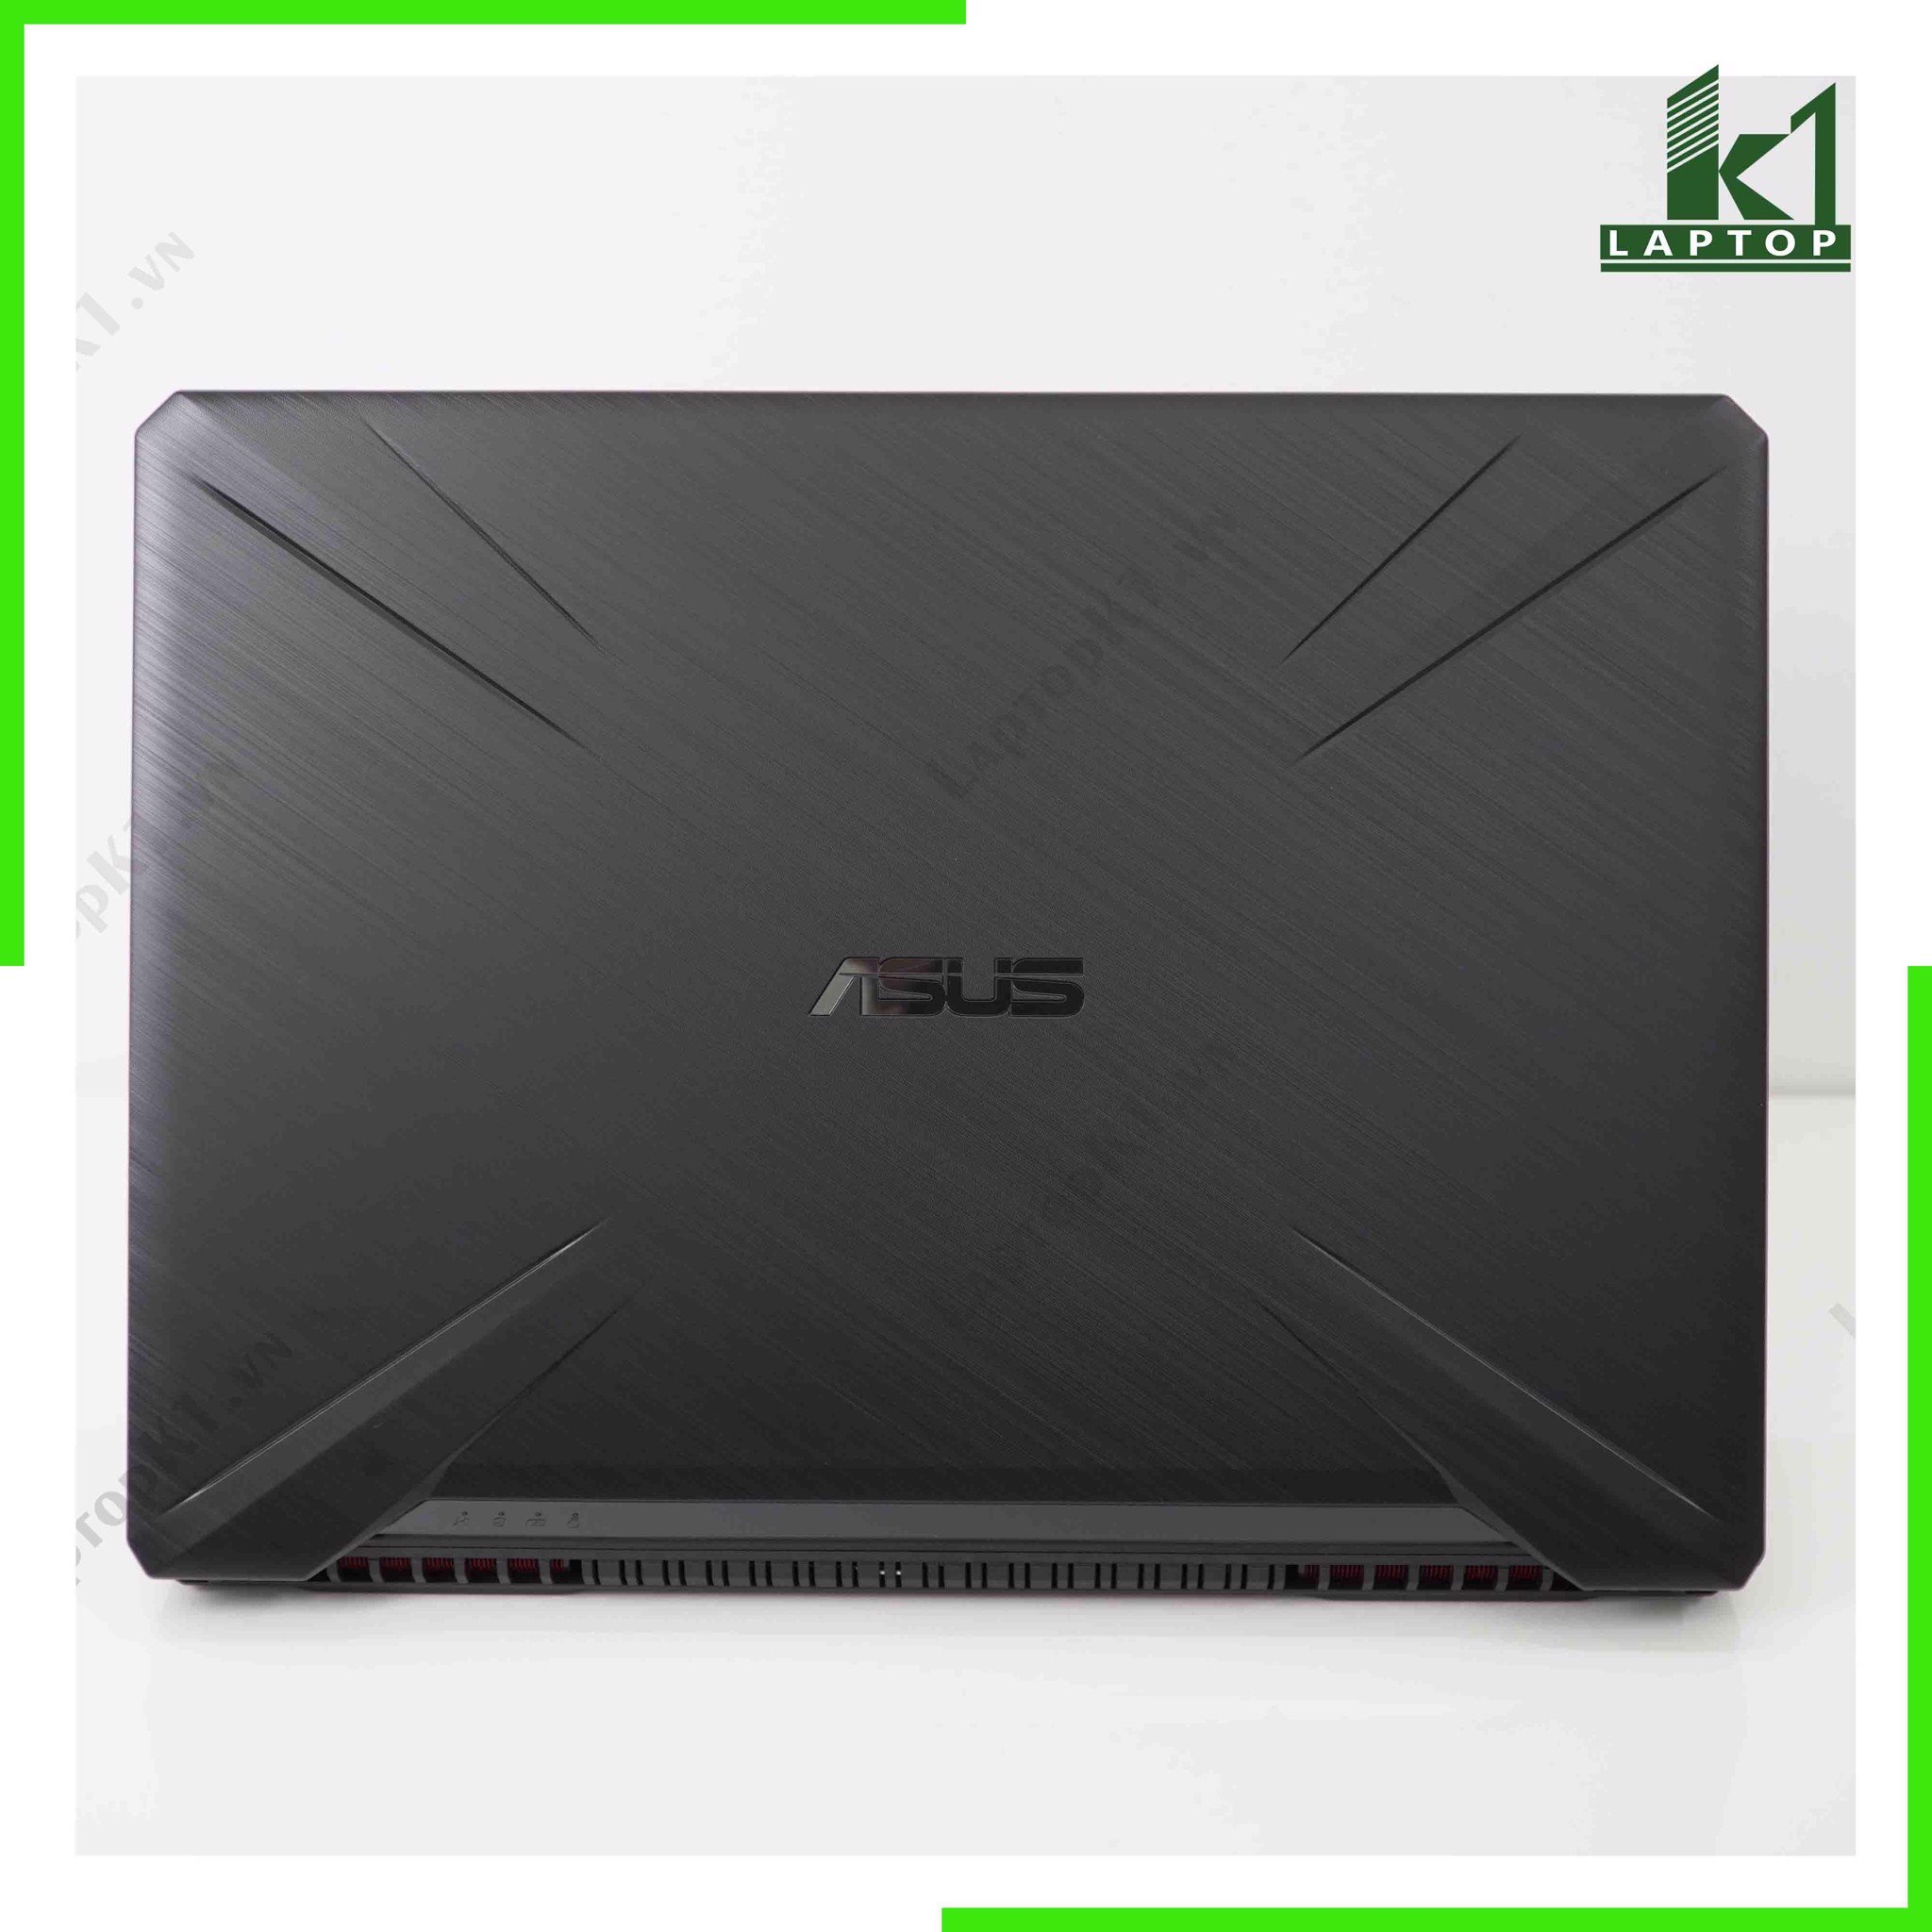 Laptop Gaming Asus TUF FX505DT, Ryzen 7-3750H, Geforce GTX 1650 4GB, 15.6″ 120Hz IPS